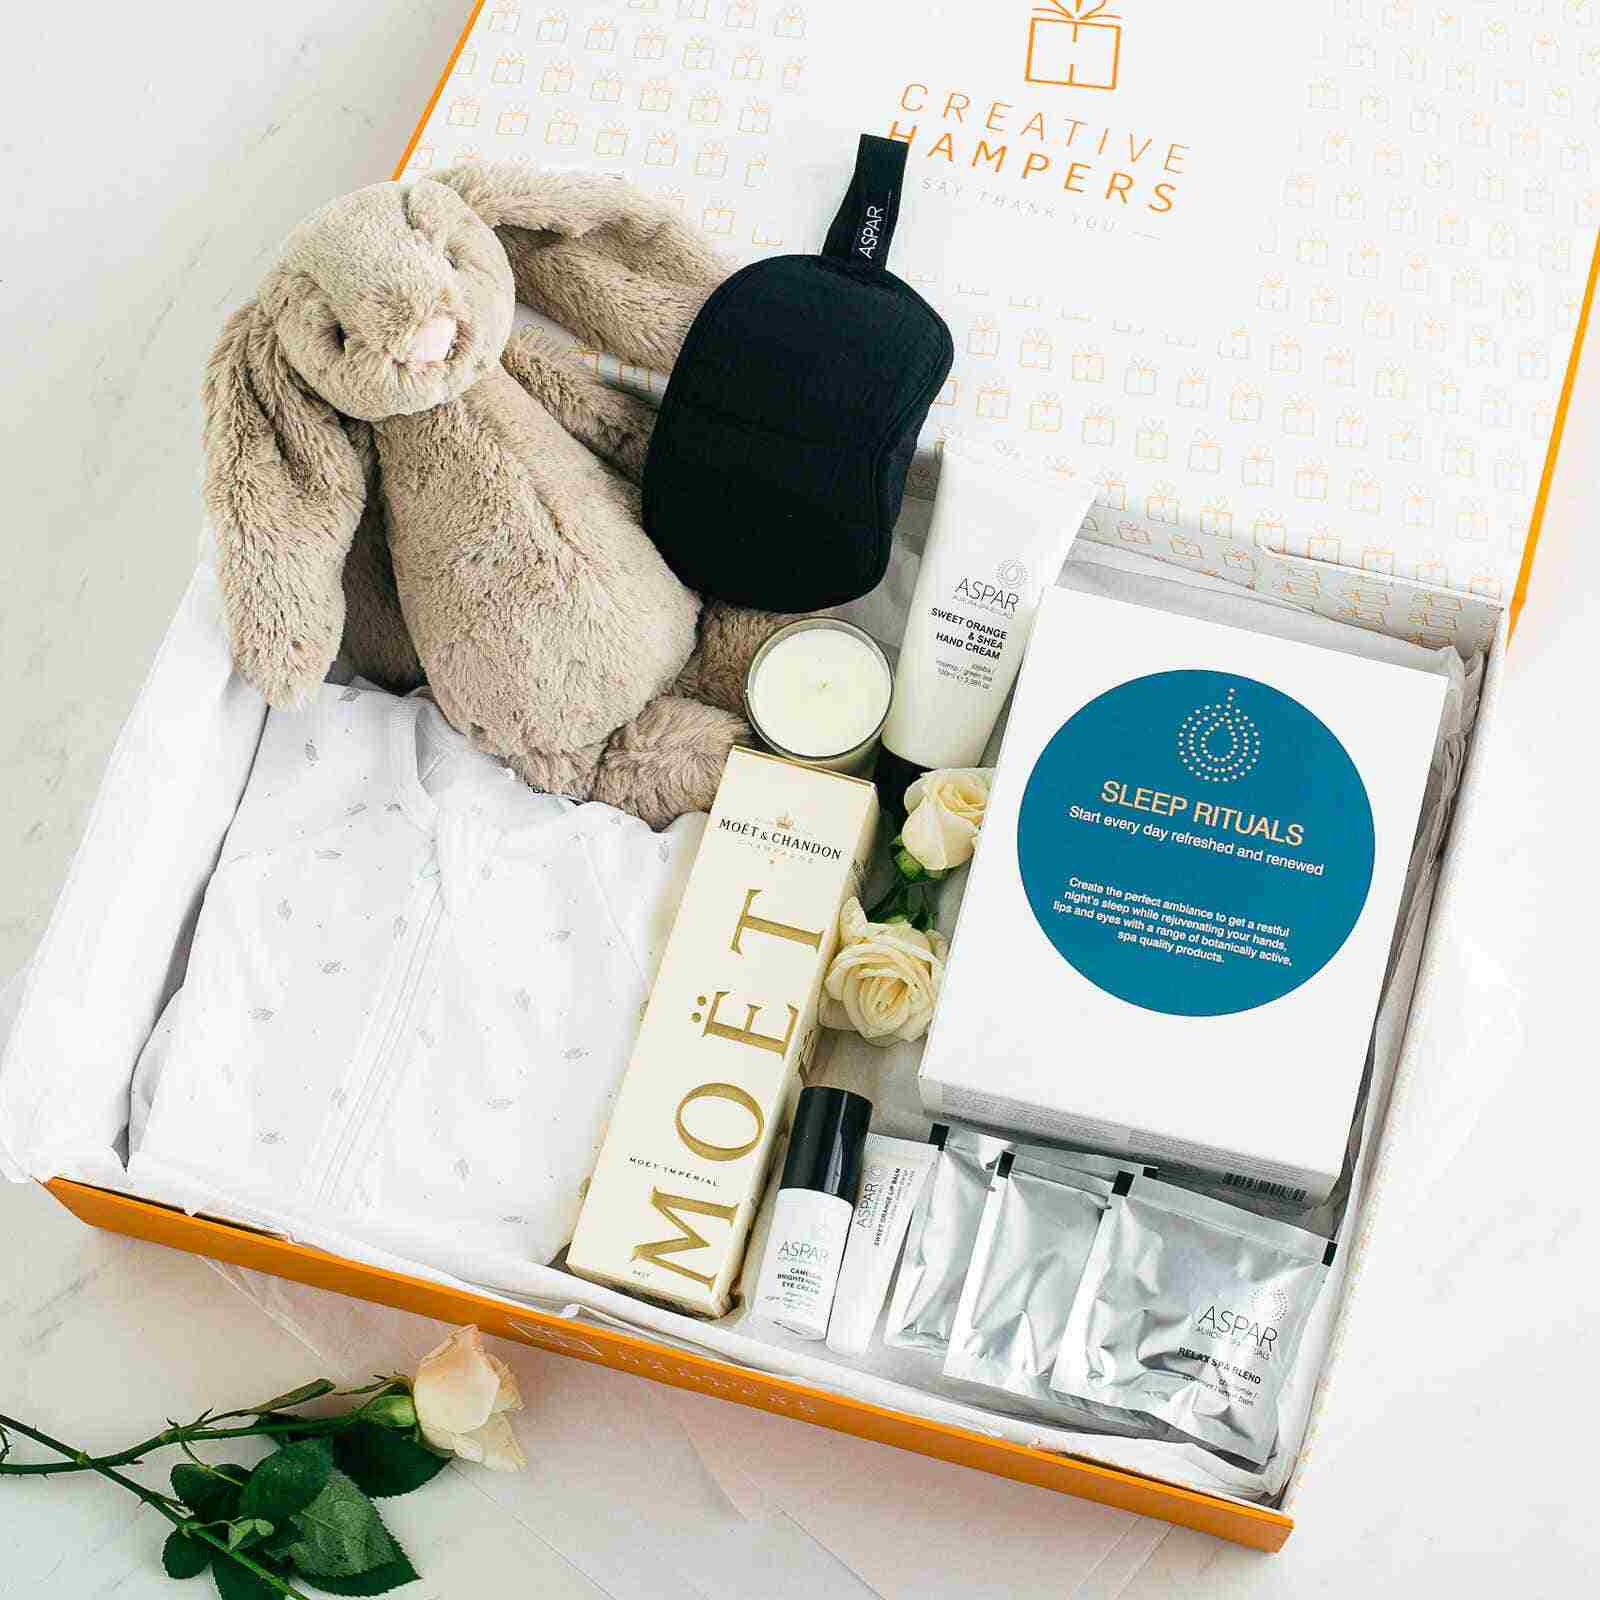 Creative hampers online gift delivery review